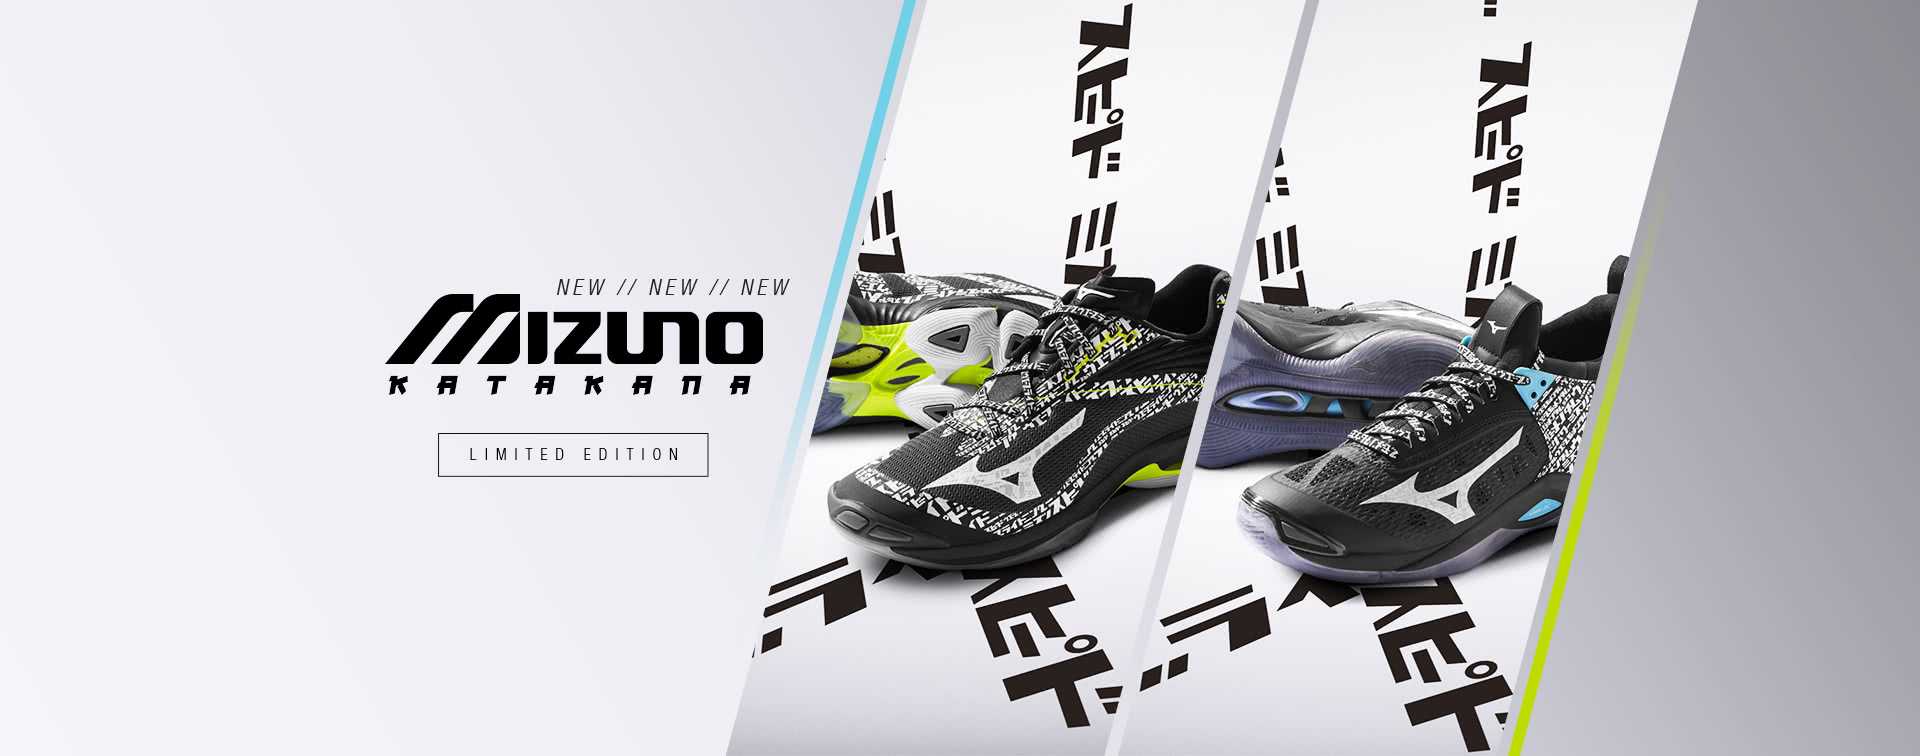 Mizuno shoes new Katakana